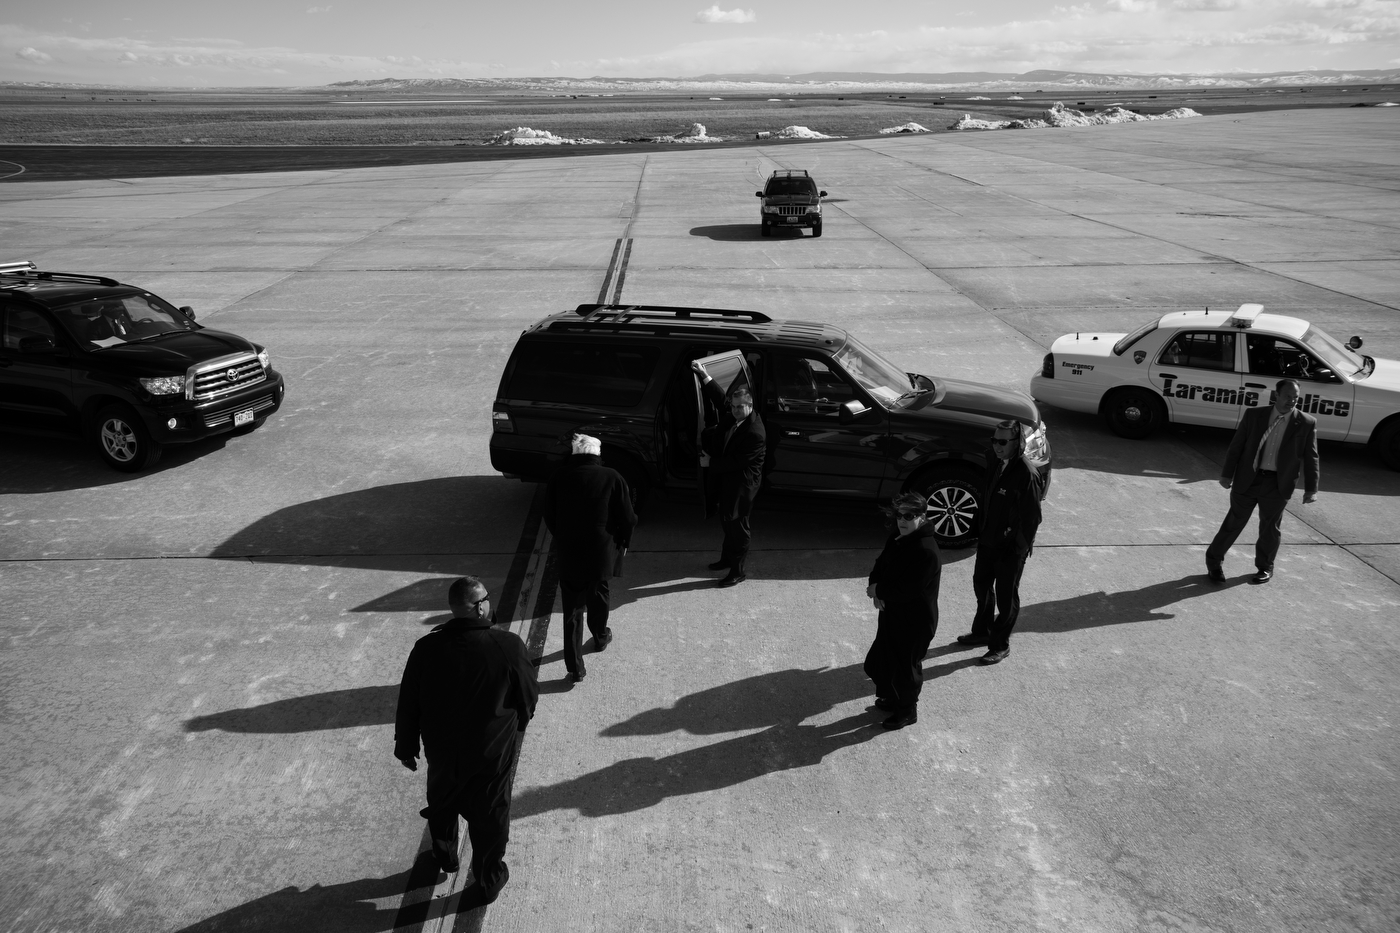 Democratic presidential candidate Bernie Sanders leaves his campaign charter plane and heads to his motorcade en route to a campaign rally at the University of Wyoming in Laramie, Wyoming on April 5. Sanders was the only Democratic candidate to travel to Wyoming and would win their caucuses a few days later.